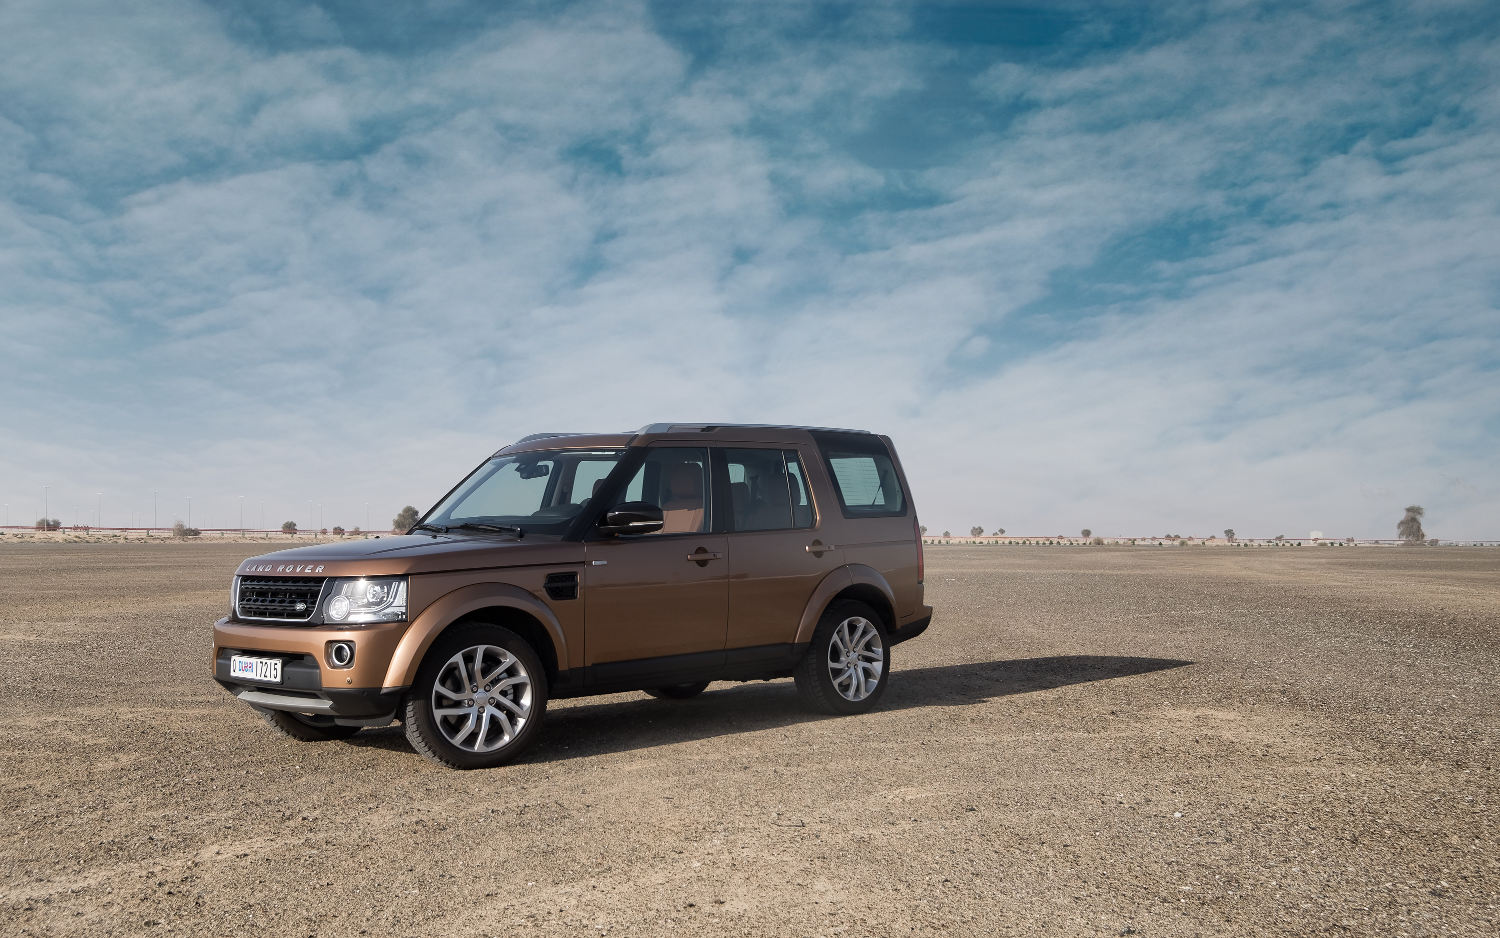 Land Rover Vs Range Rover Comparison Land Rover Lr4 Suv 2015 Vs Land Rover